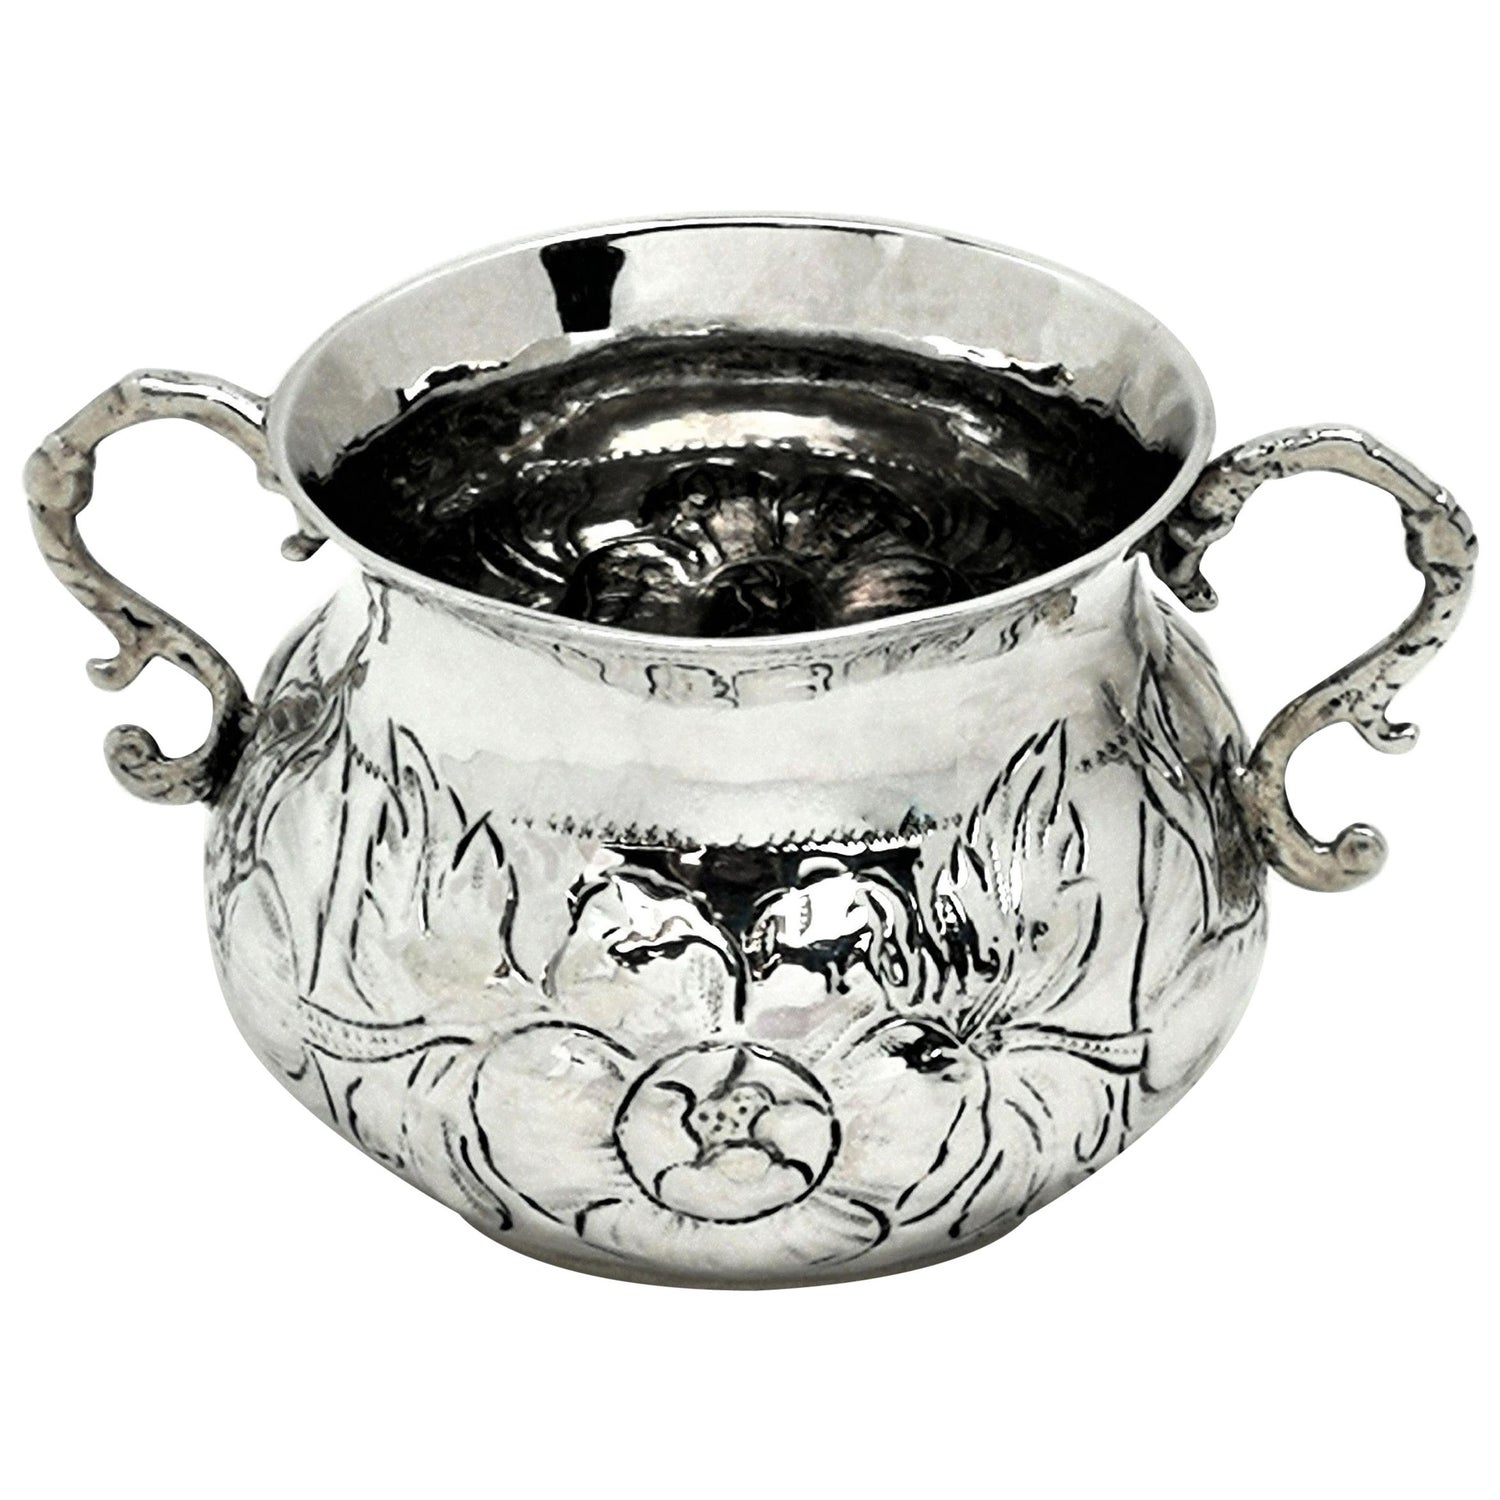 Early Antique Charles II Sterling Silver Porringer / Two Handled Cup, 1675